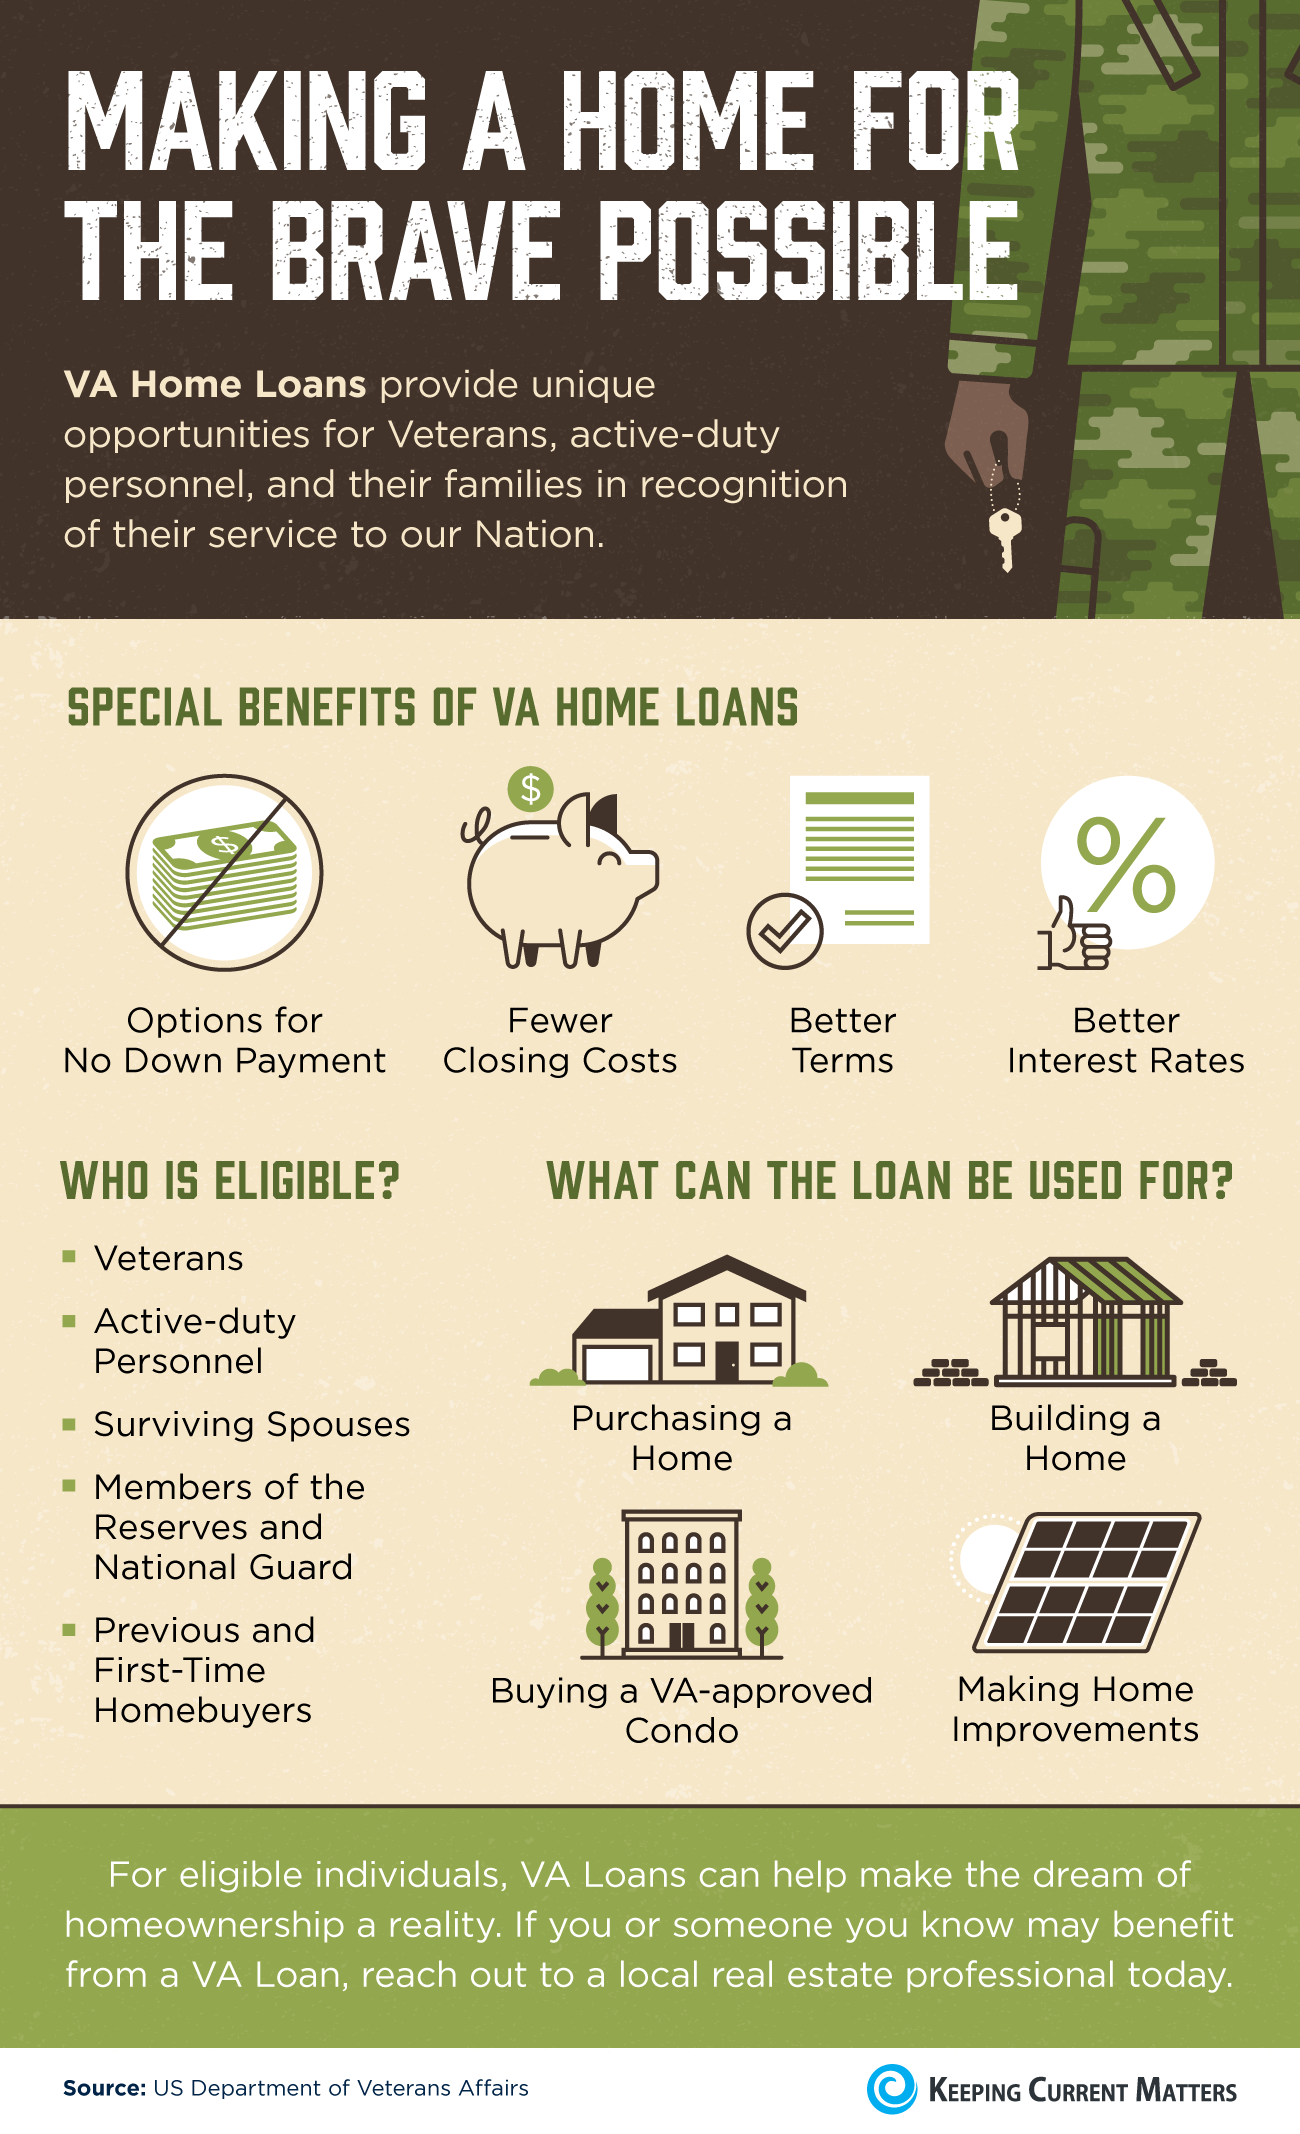 Making a Home for the Brave Possible [INFOGRAPHIC] | Keeping Current Matters